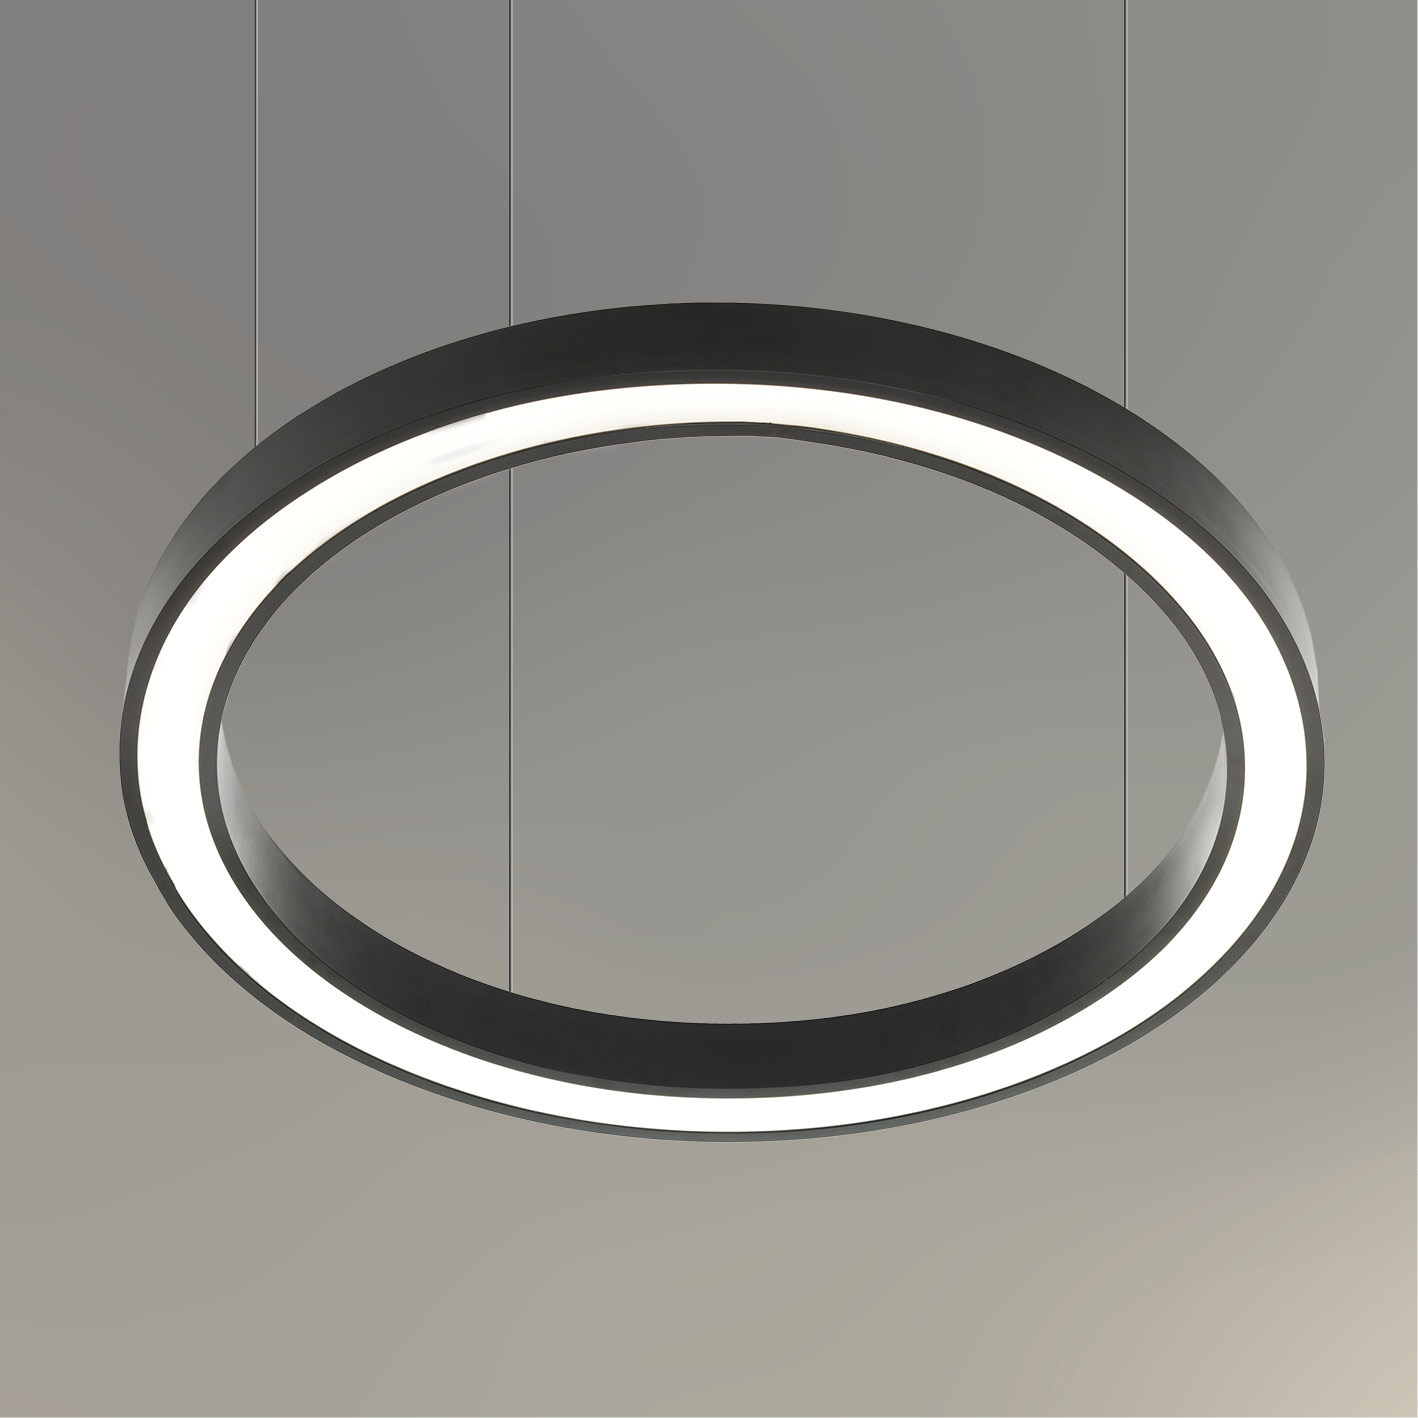 Serie VECTOR ROUND D Art. 9736 Linea ARCHITECTURAL